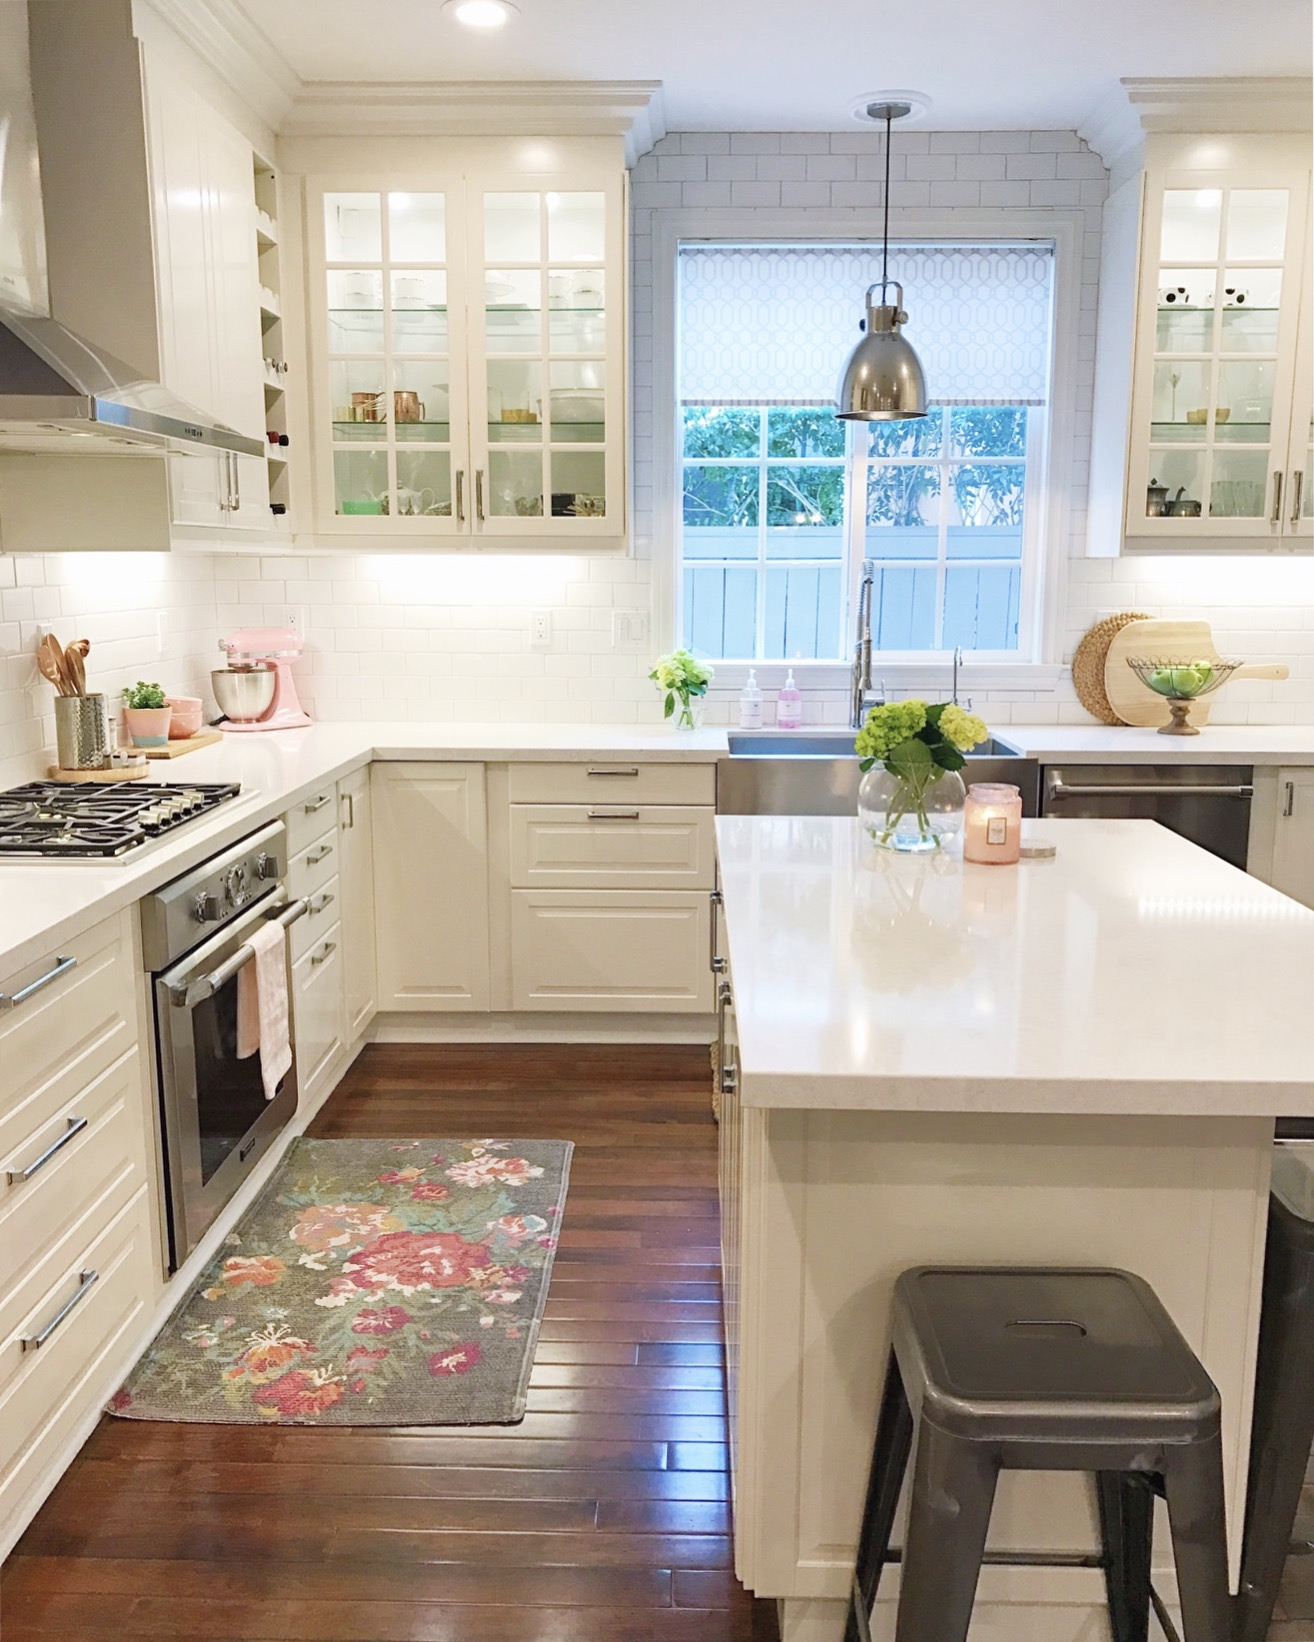 When Selecting Whether You Want Doors Or Drawers And How To Organize And  Arrange The Inside Of The Cabinets Think About How You Use Your Current  Kitchen And ...